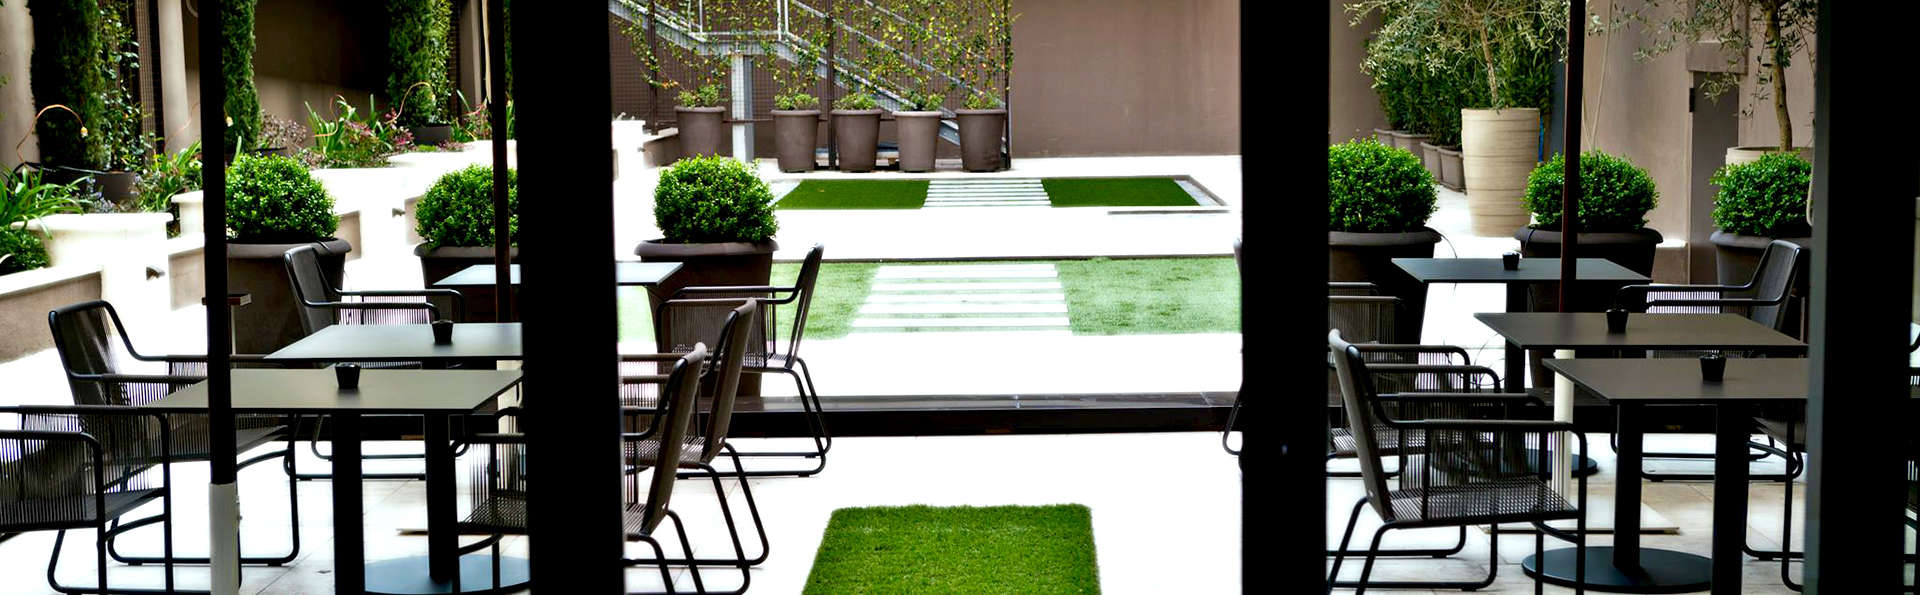 Fifty House - Edit_Terrace.jpg